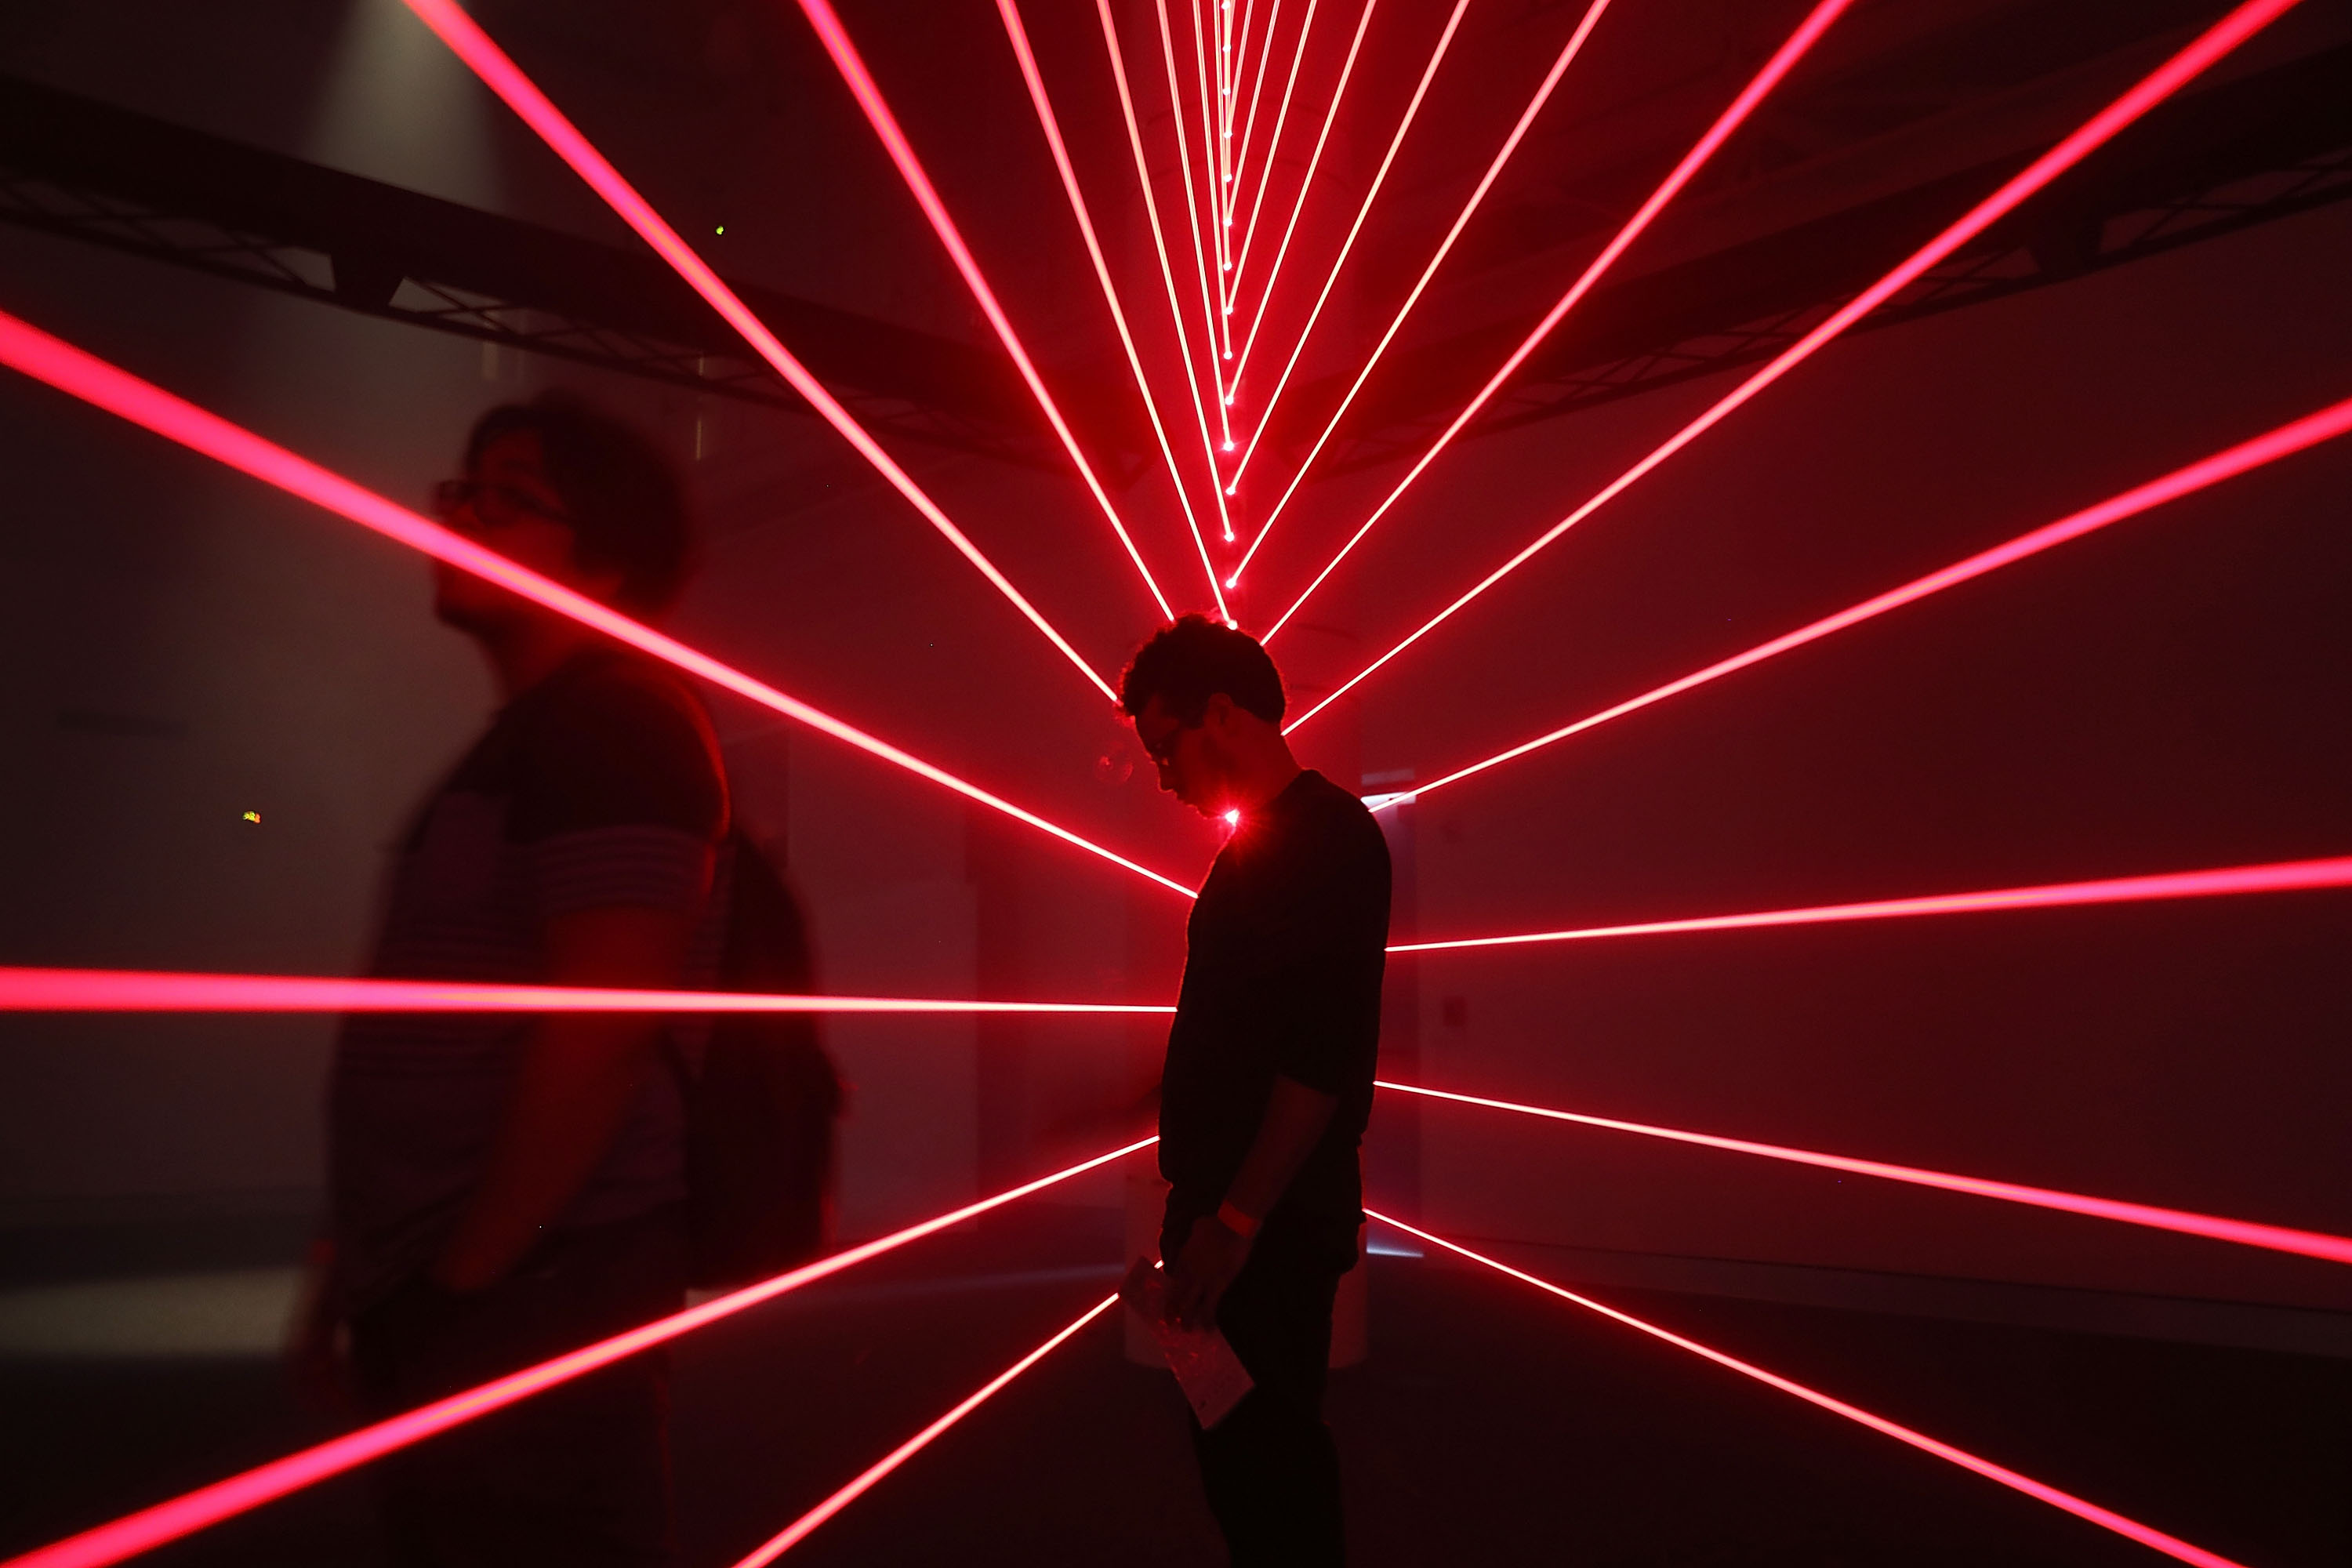 A laser exhibition at the frost museum of science in Miami.